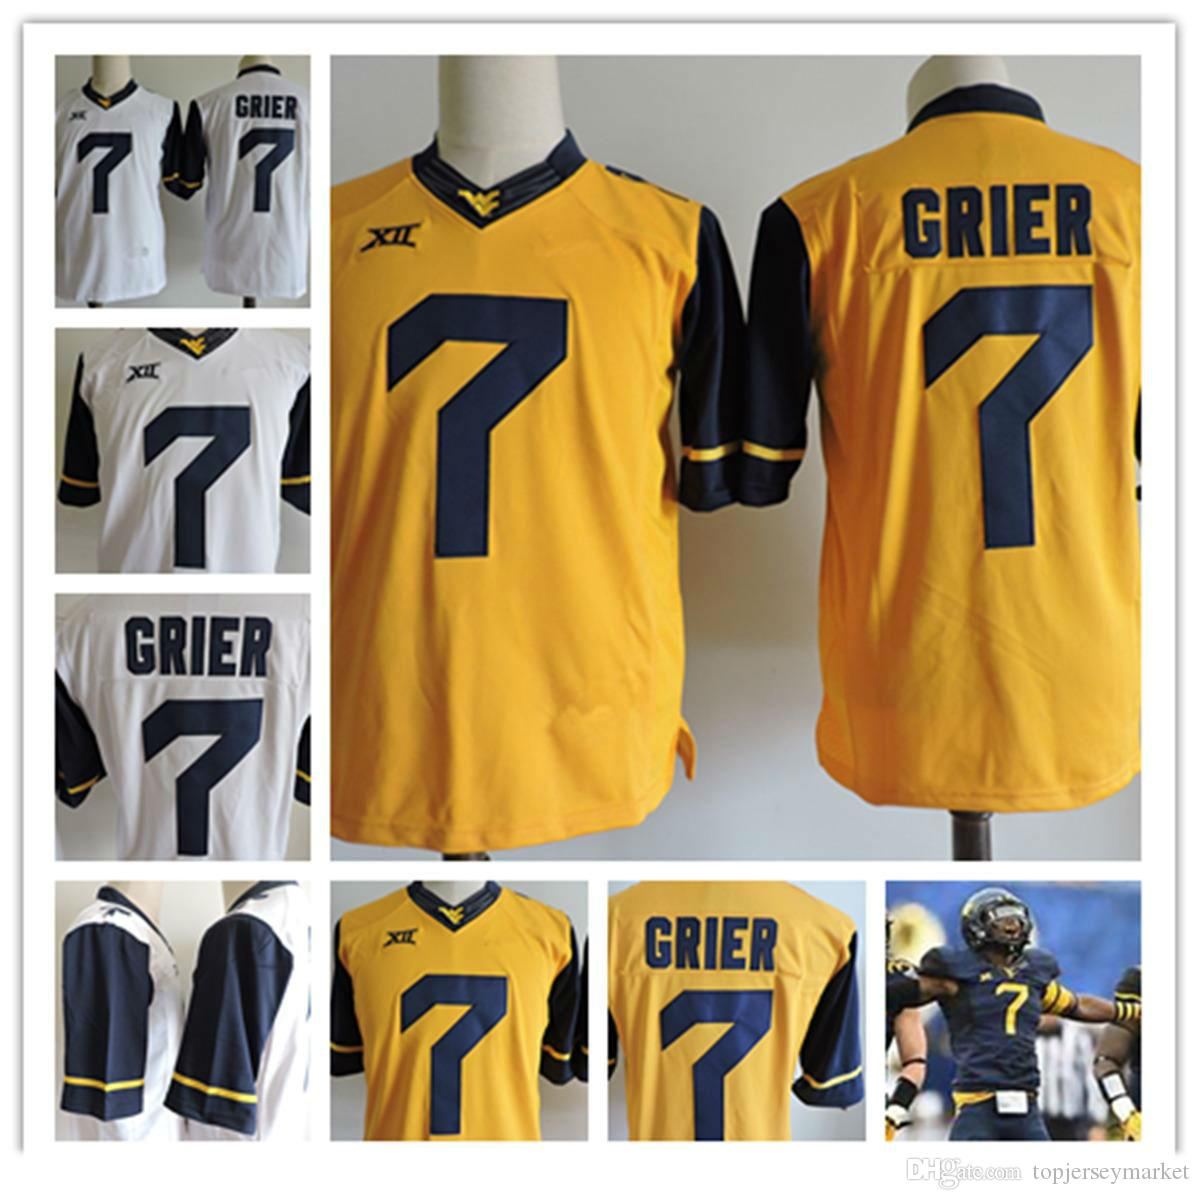 best cheap 38bc8 14de8 Mens Montañeses de Virginia Occidental Will Grier camisetas de fútbol  universitario Stithced # 7 Will Grier NCAA XII West Virginia Mountaineers  Jersey ...